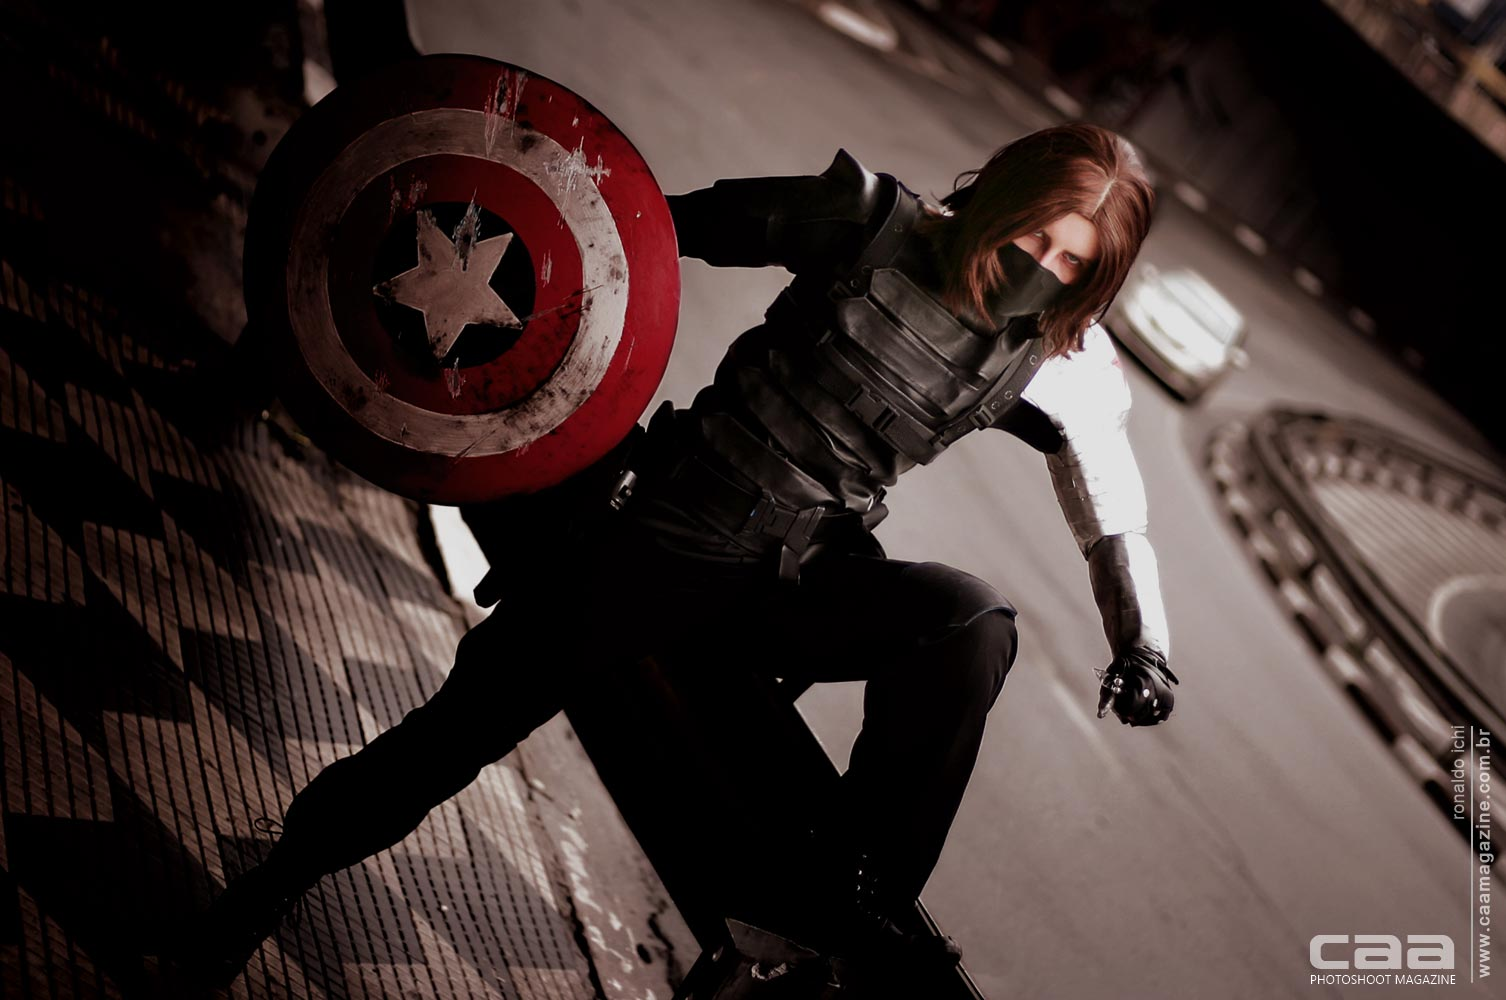 [PHOTOSHOOT][MARVEL] Winter Soldier